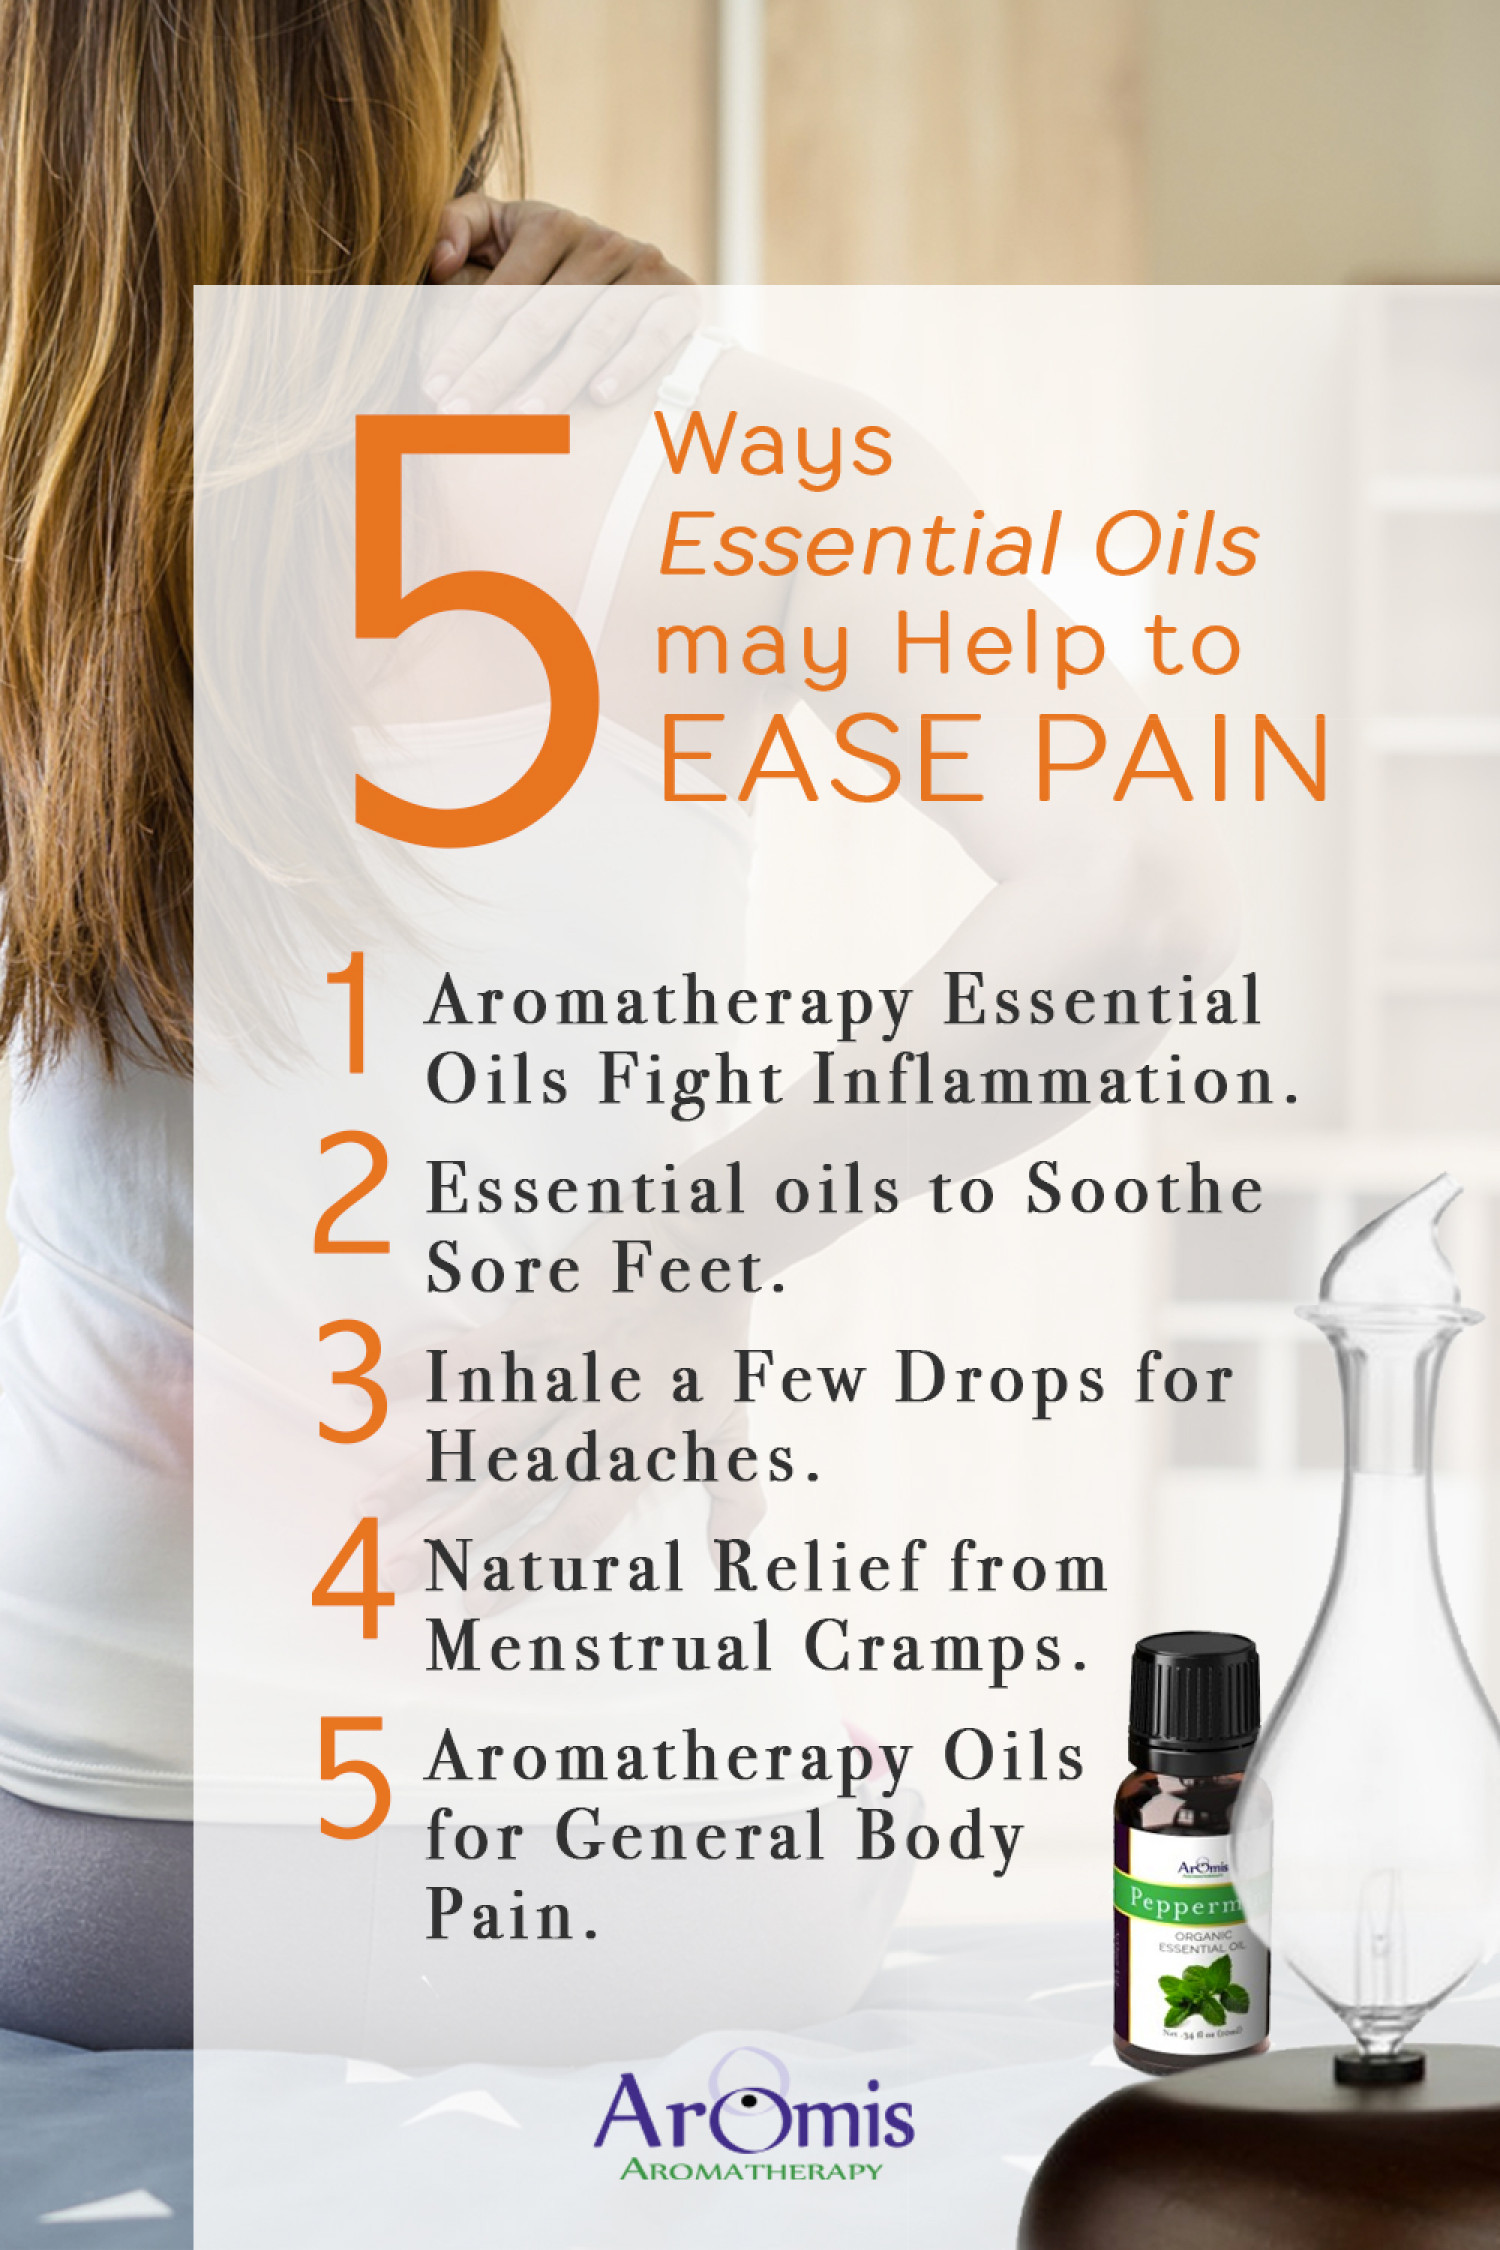 5 Ways Essential Oils May Help to Ease Pain Infographic